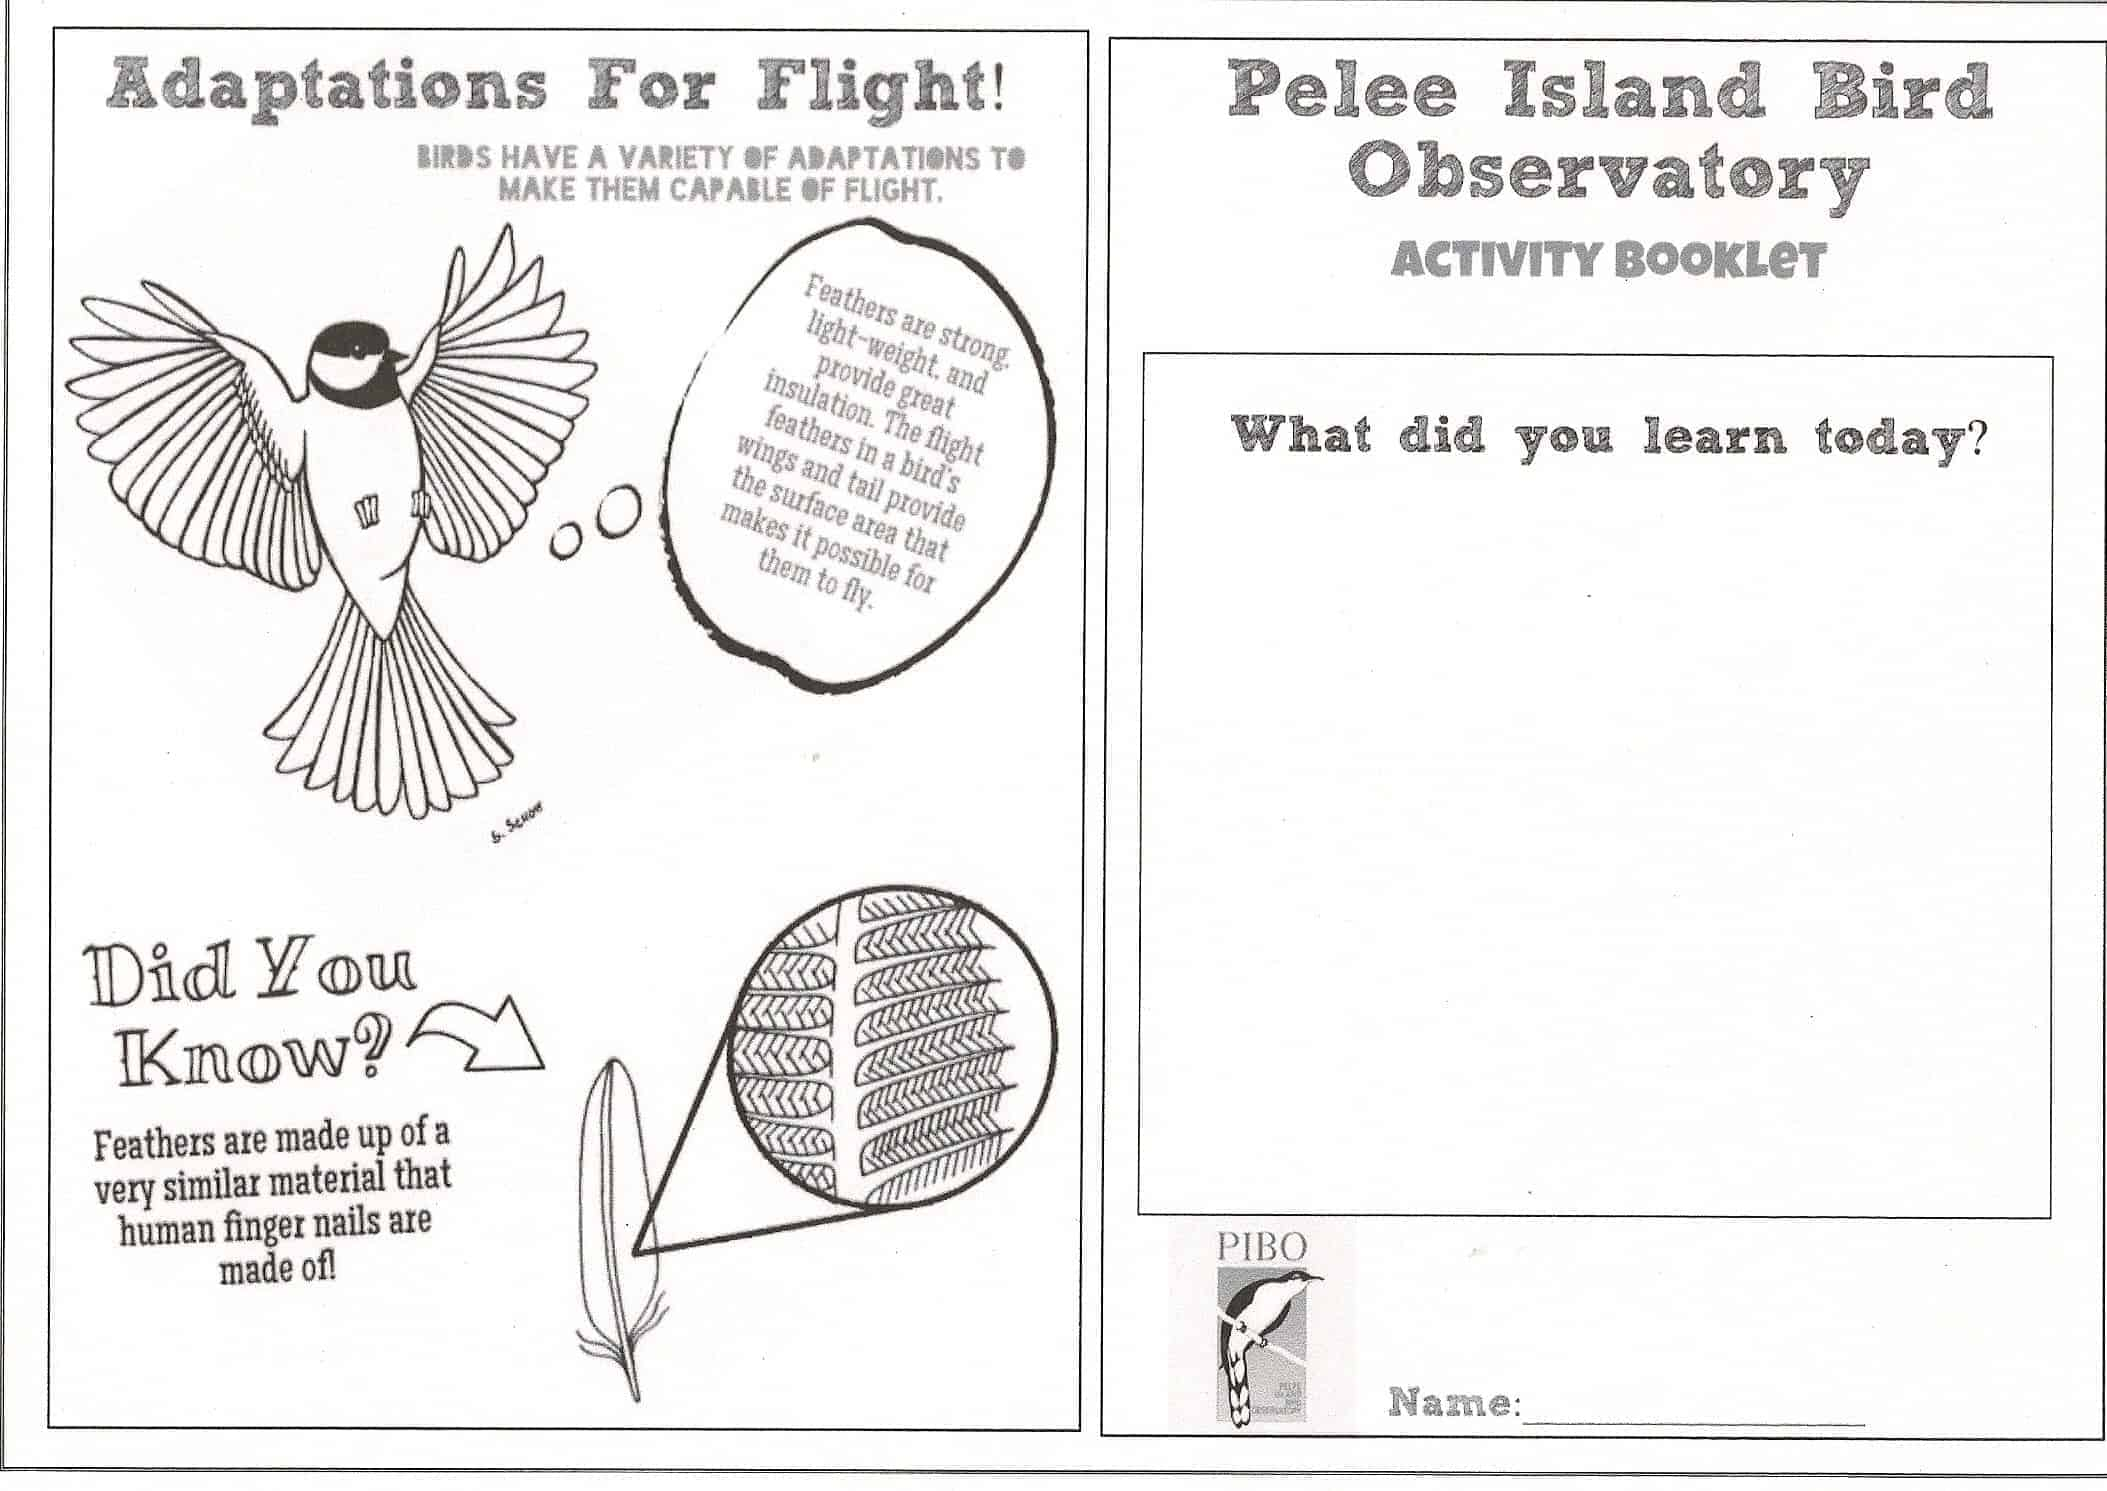 the pelee island bird observatory new pibo activity booklet for